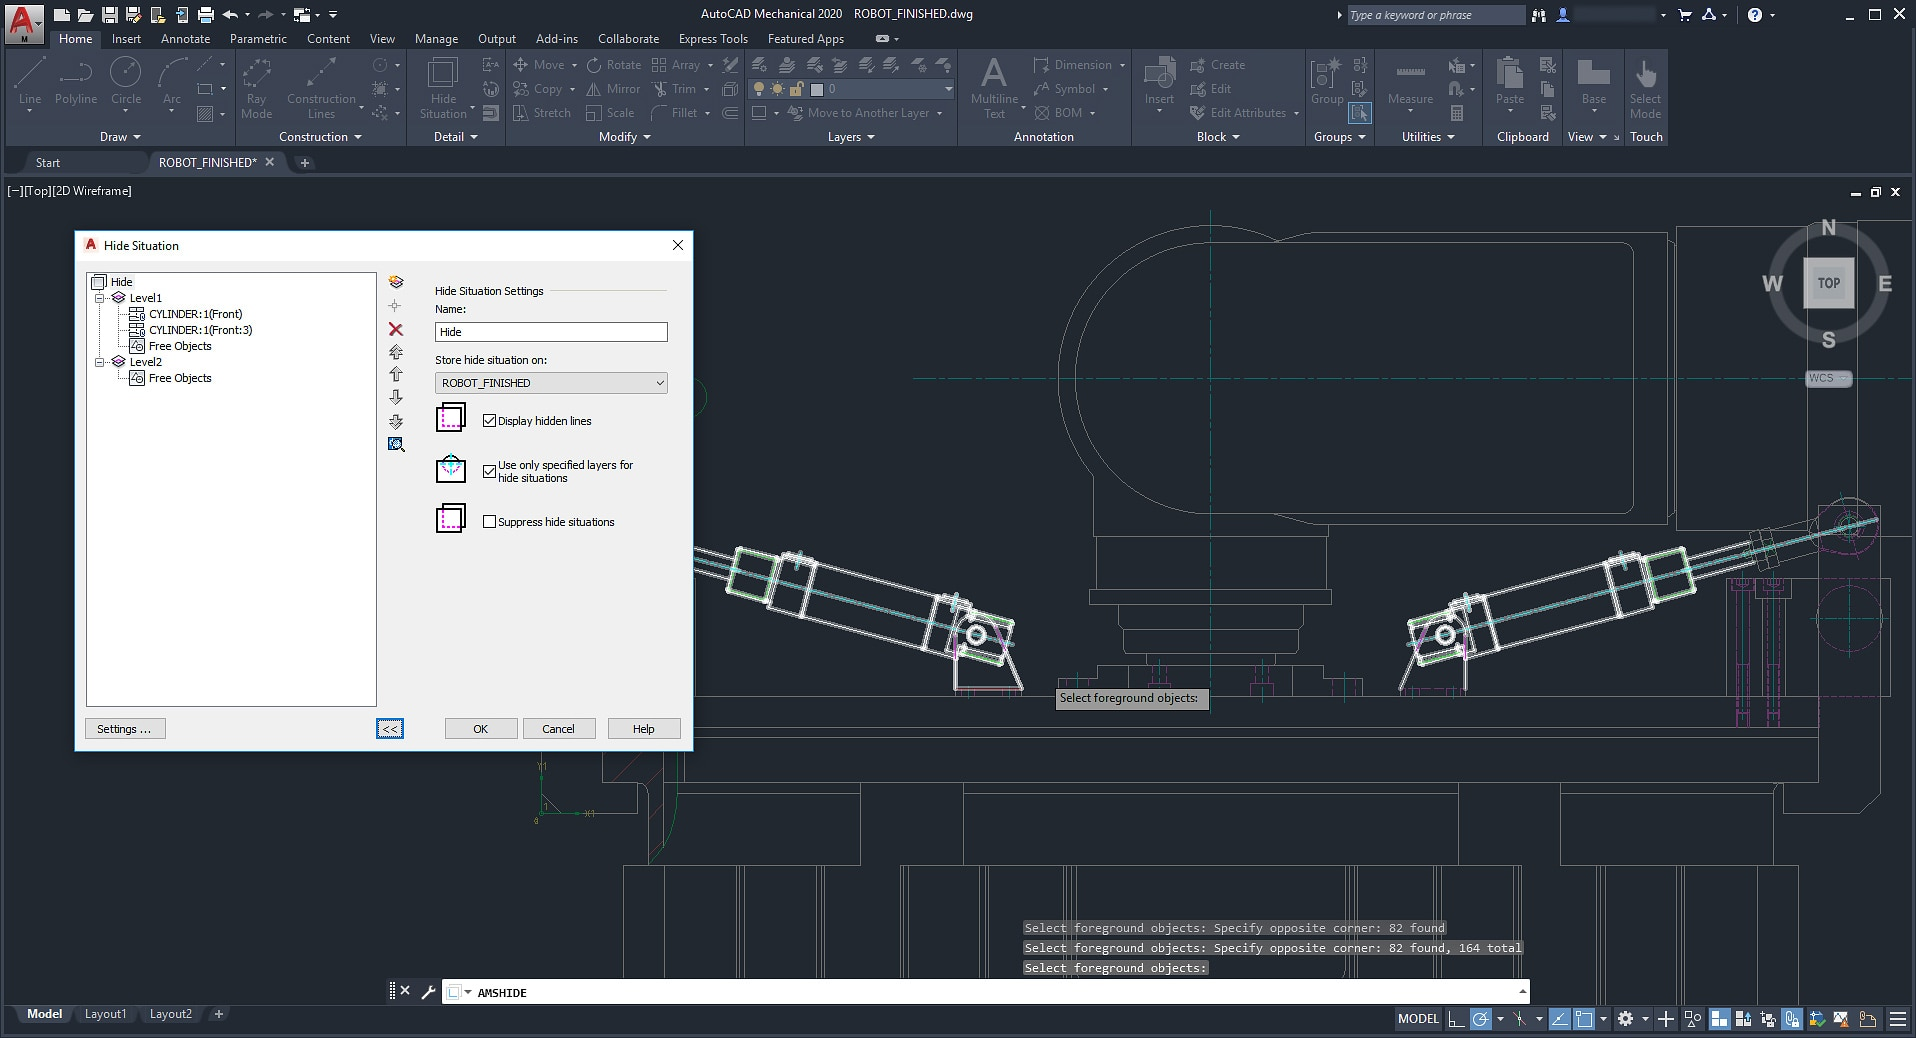 hight resolution of the autocad mechanical toolset automatically creates hidden lines when you specify which objects overlap the others